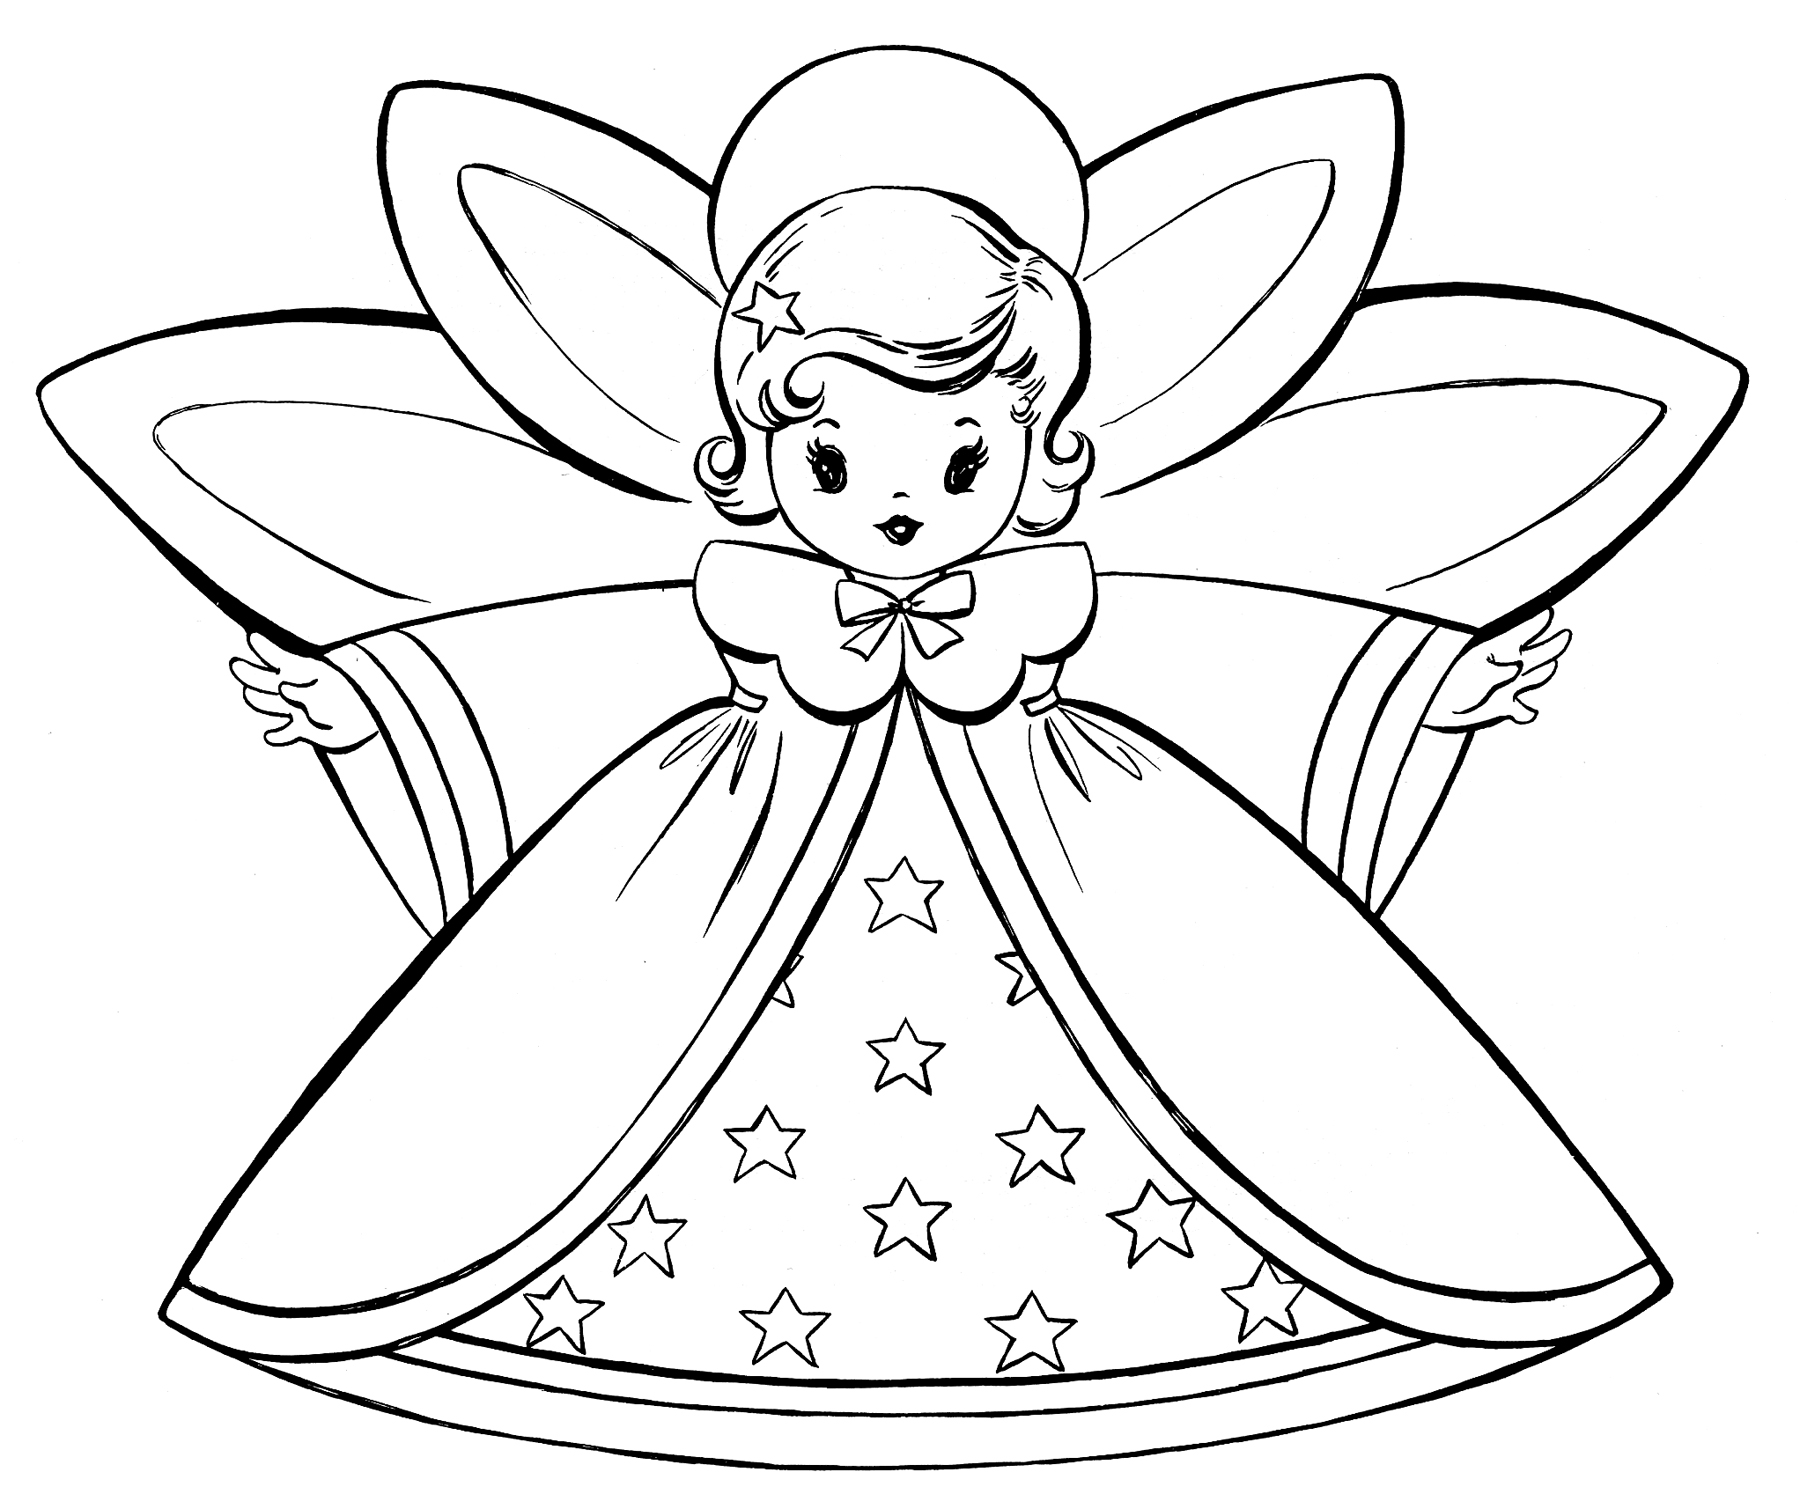 coloring christmas clipart black and white free coloring pages and activities christmas coloring christmas and coloring black white clipart